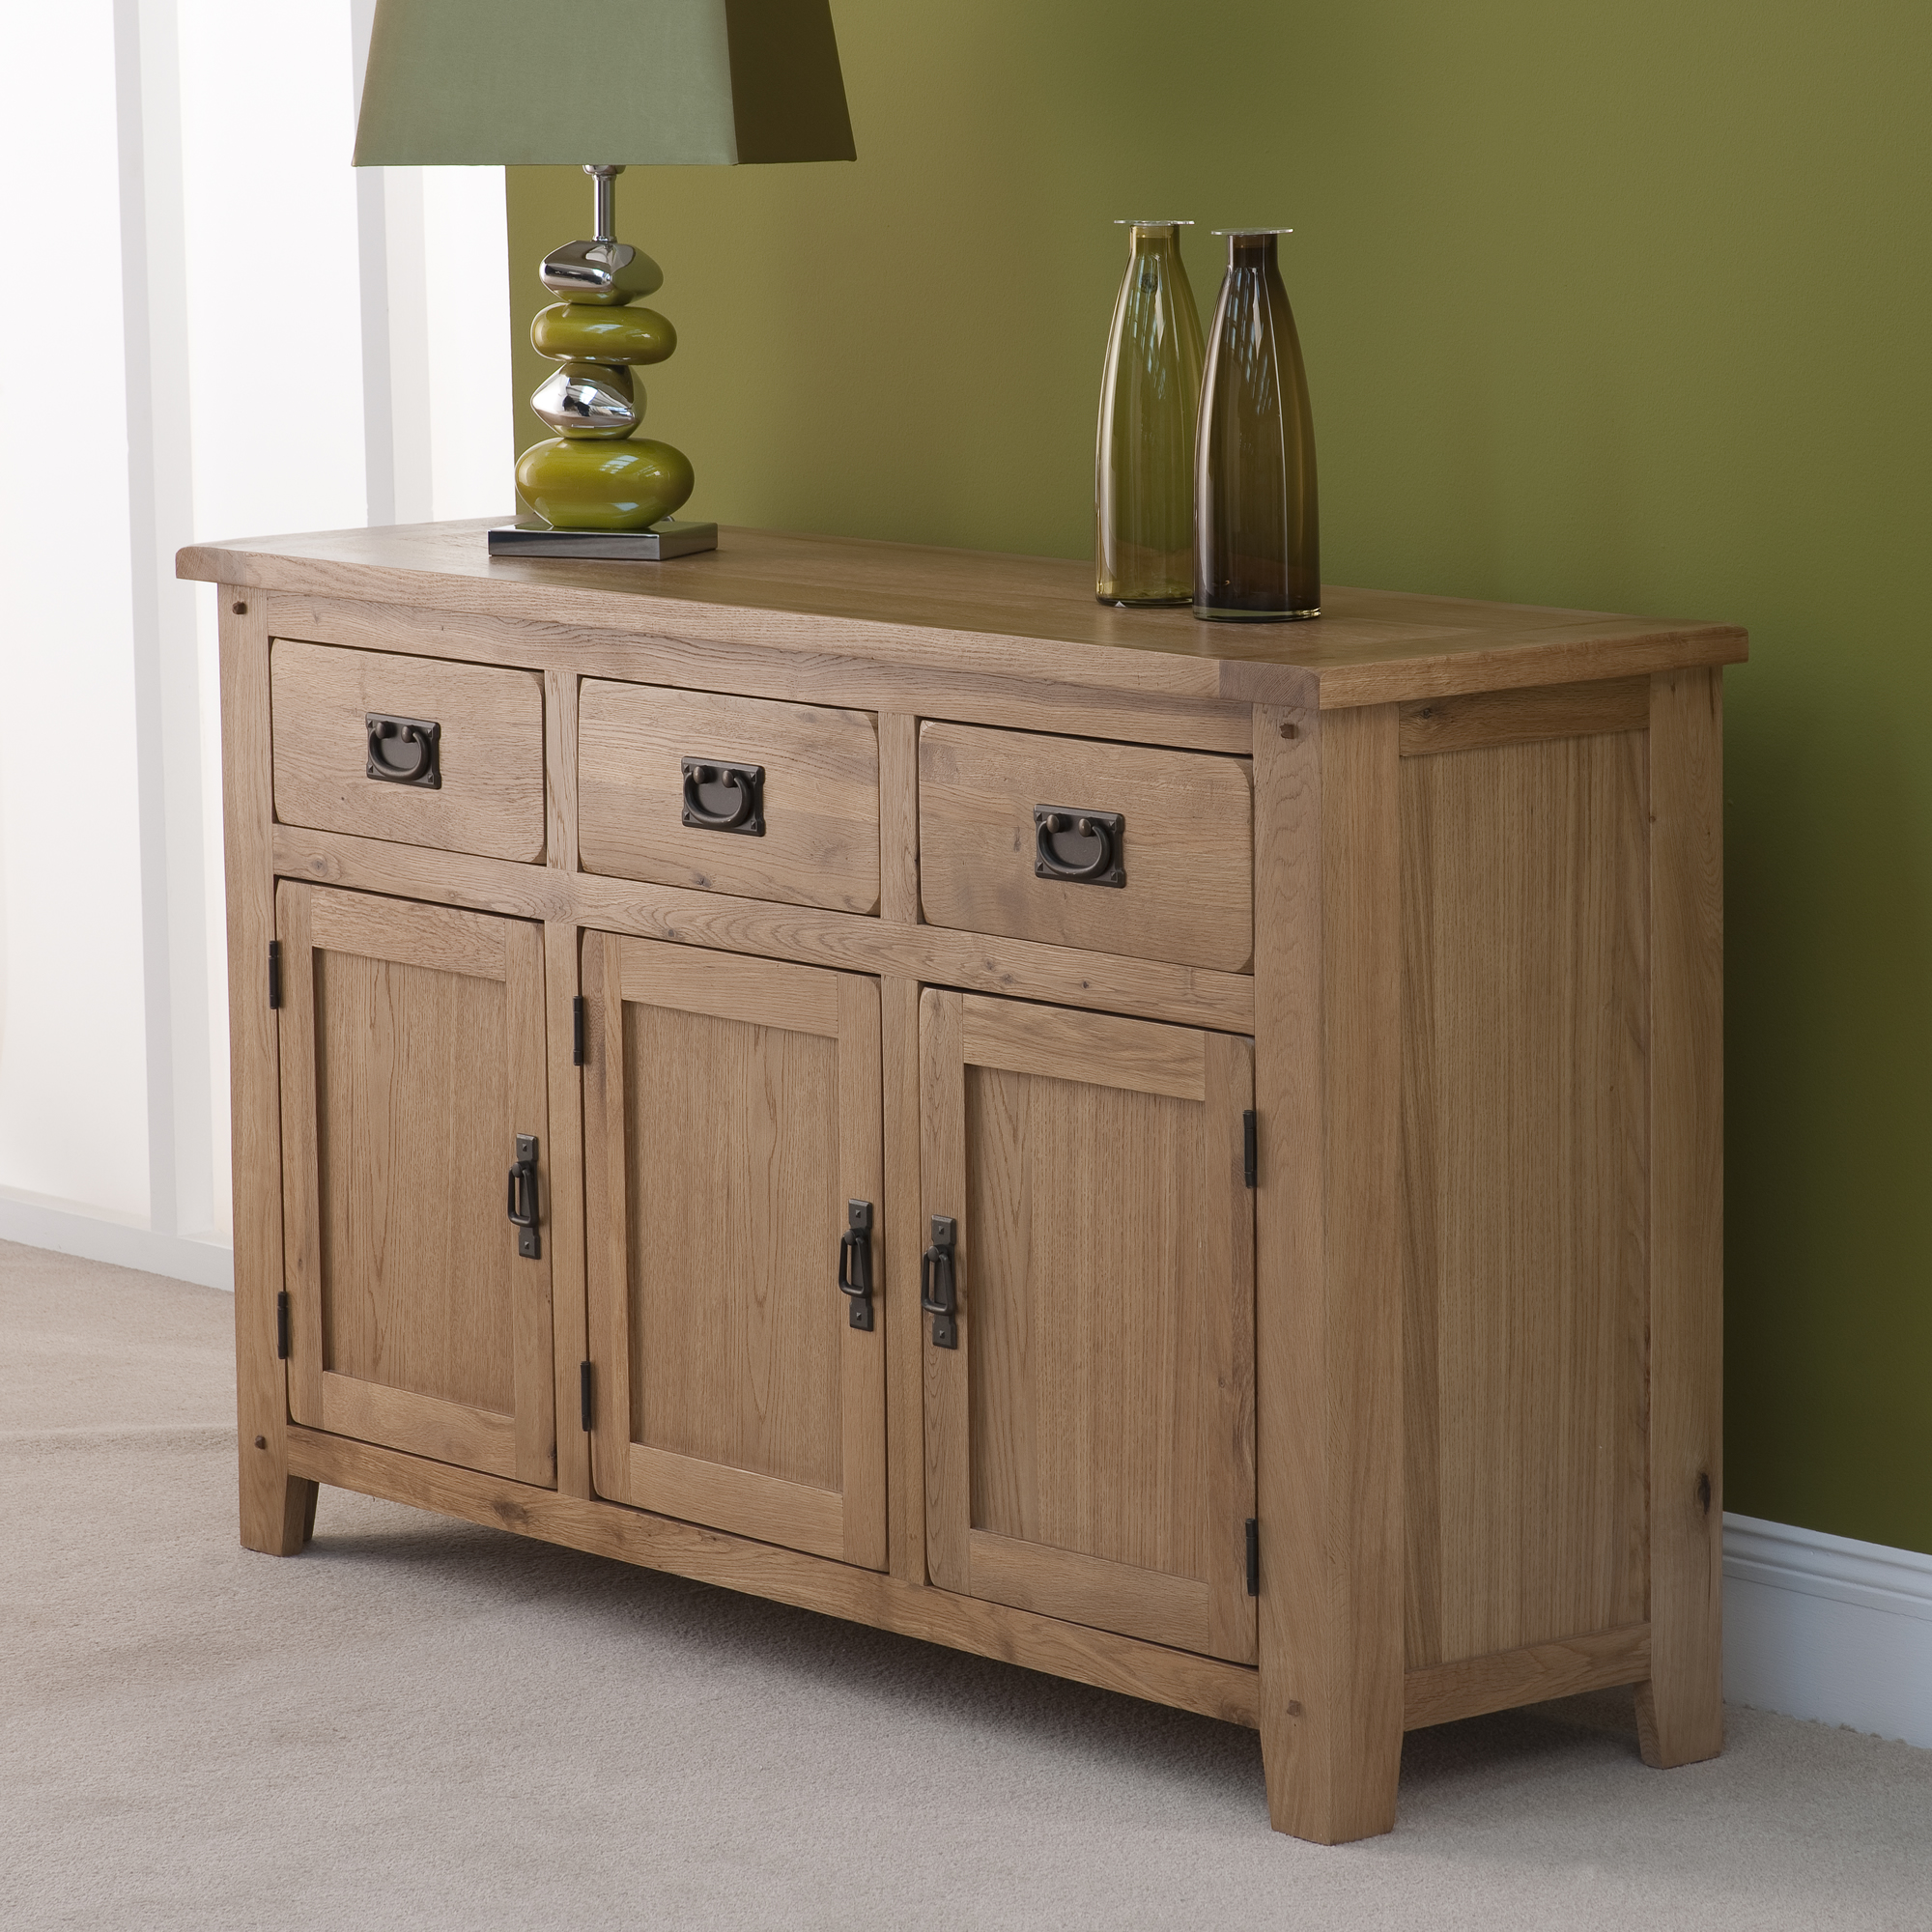 everything you need to know about a dining room sideboard -